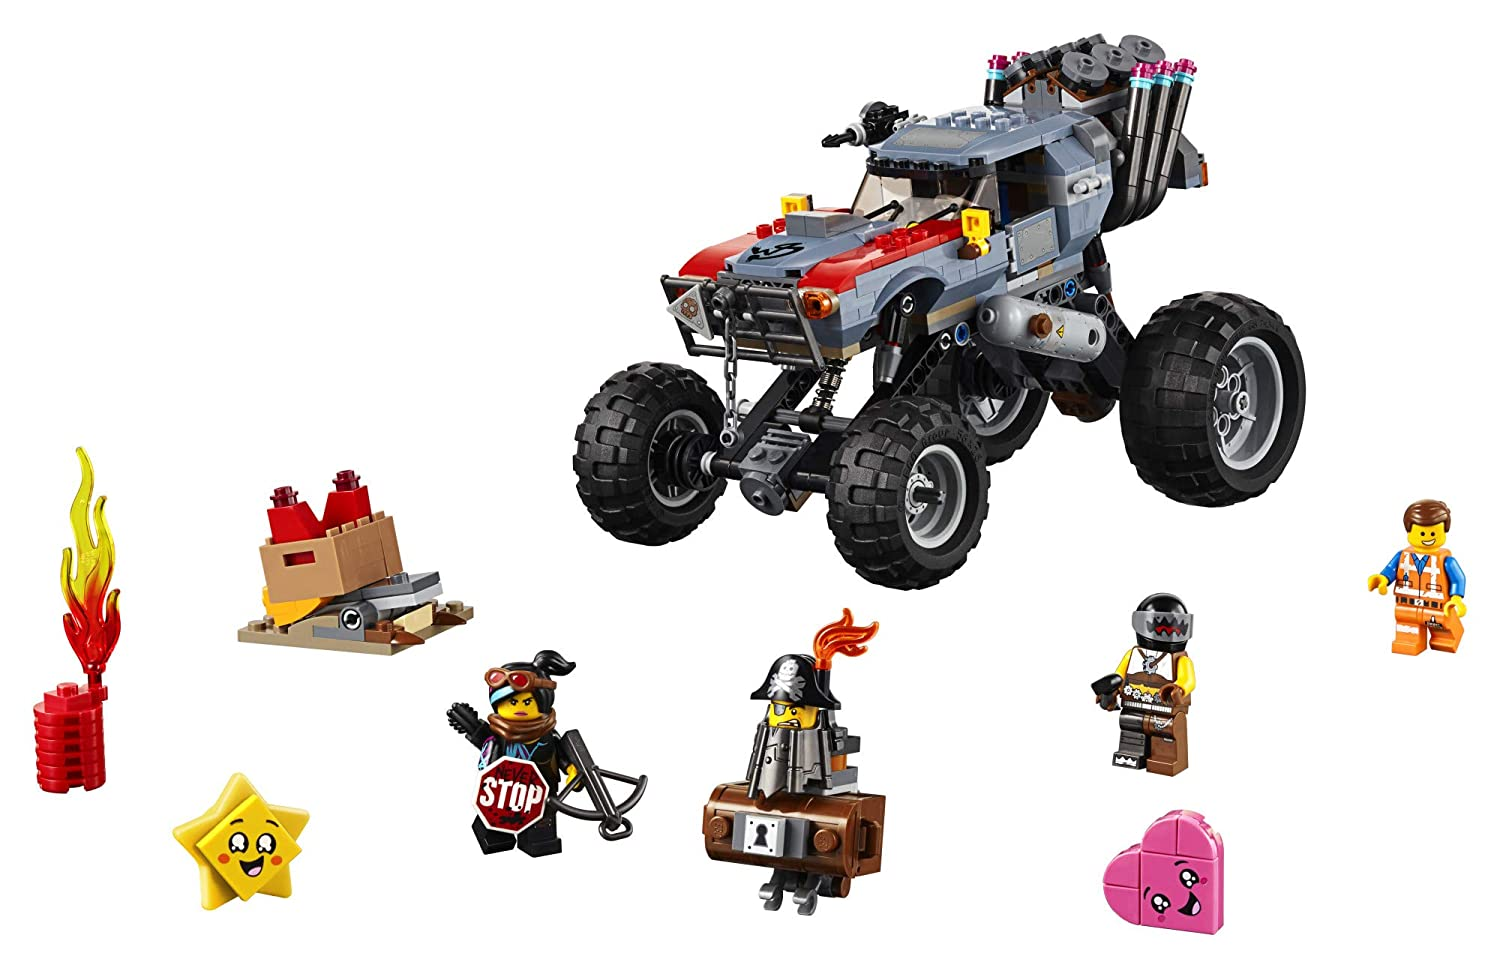 LEGO THE LEGO MOVIE 2 Escape Buggy 70829 Building Kit Build and Play Toy Car with Action Heroes 550 Pieces